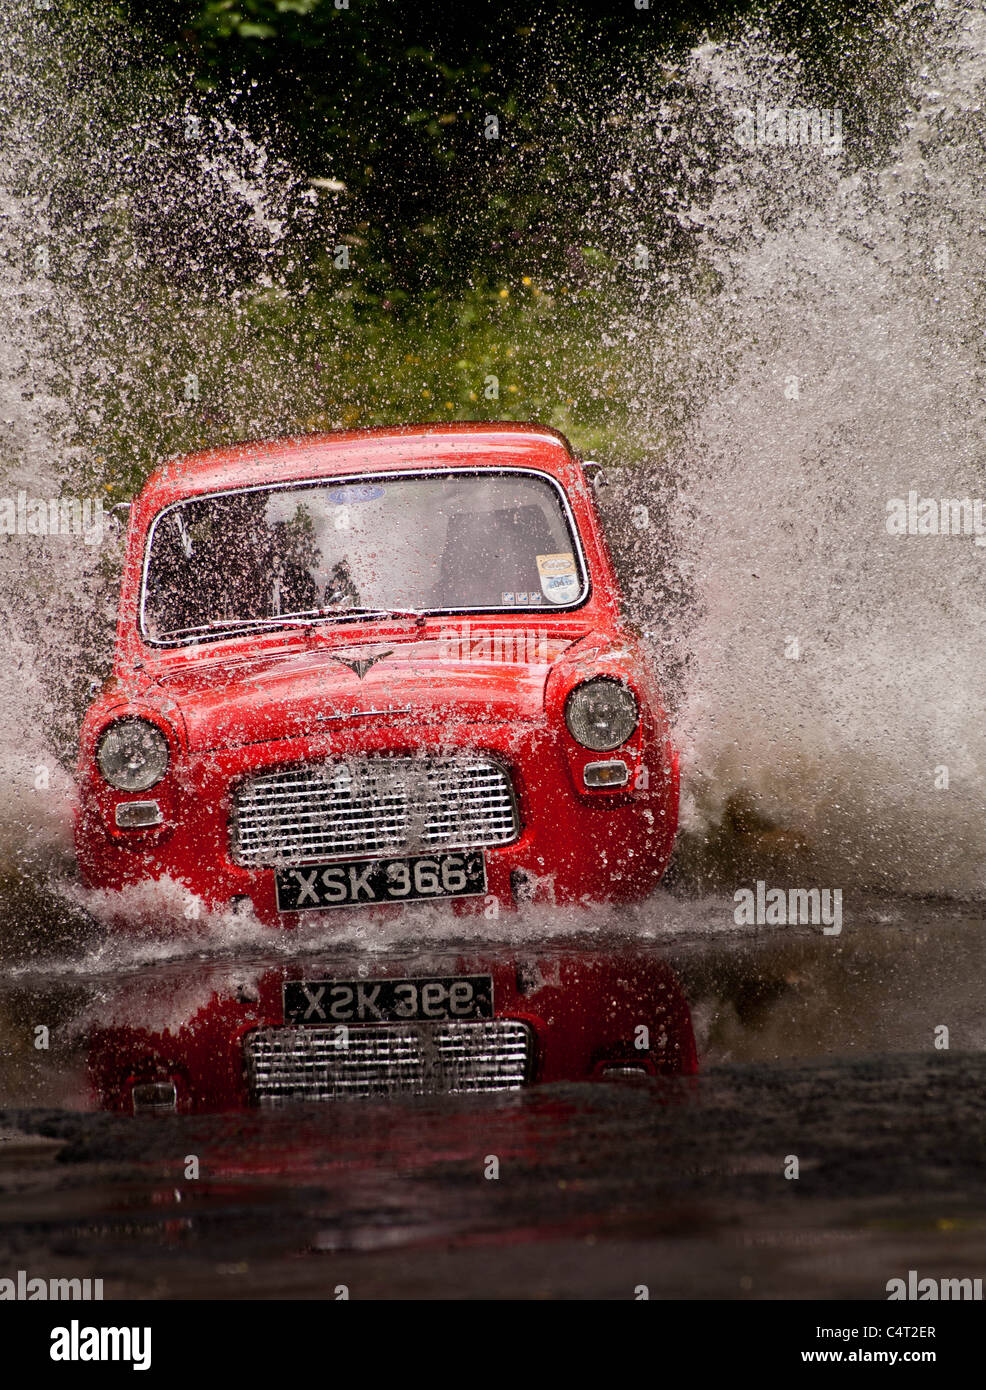 Renovated classic car 1959 Ford Anglia 100E going through water ford - Stock Image